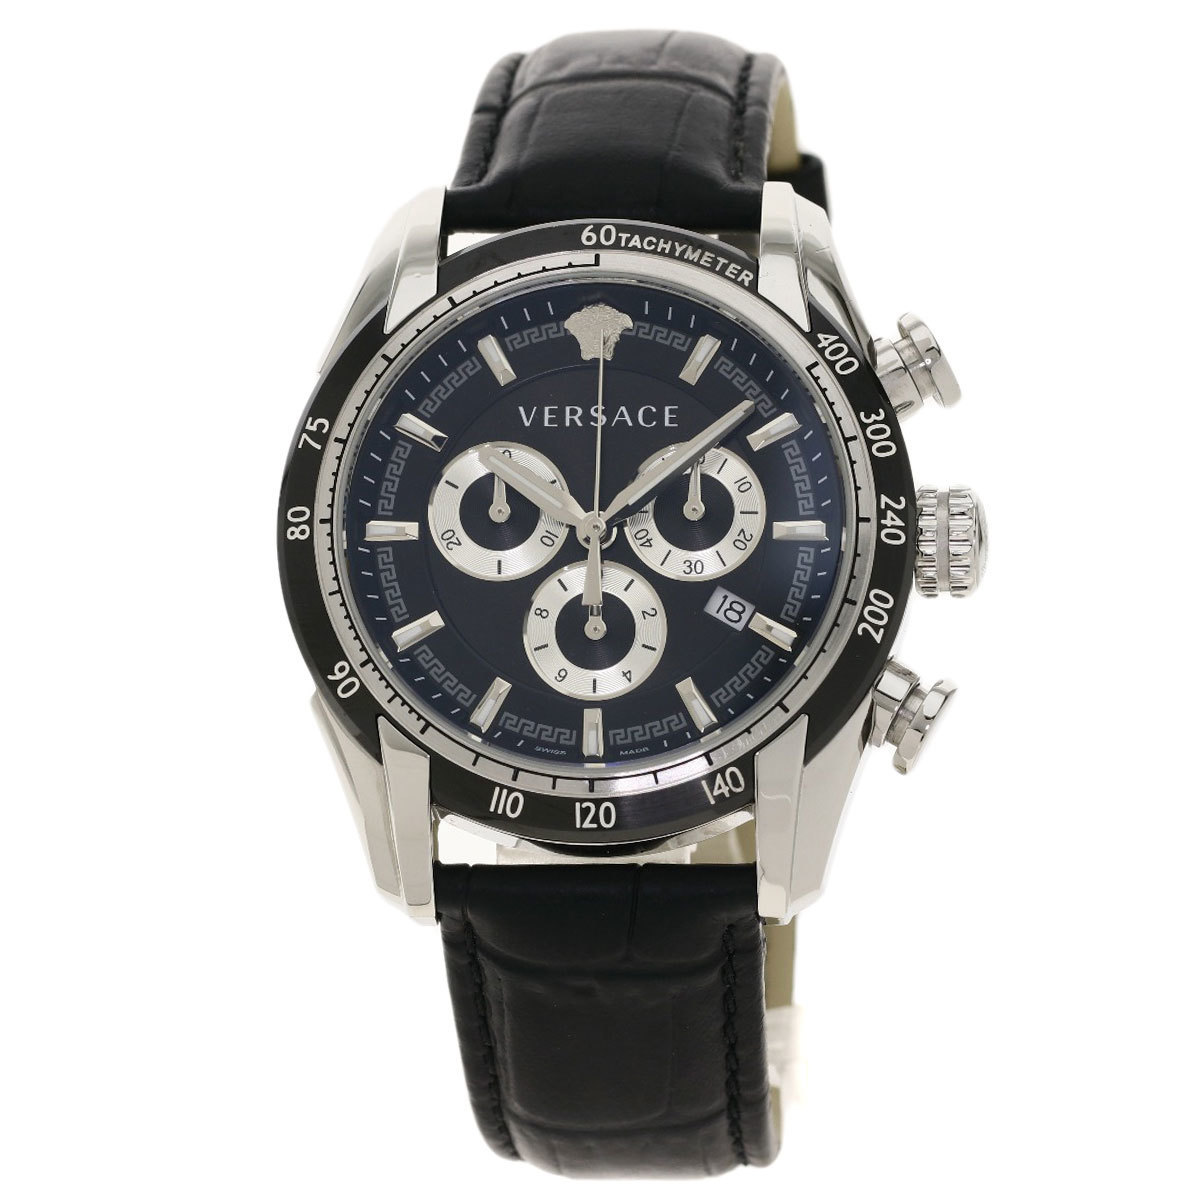 Gianni Versace VEDB00118 V-Ray Watch Stainless Steel Leather Men's